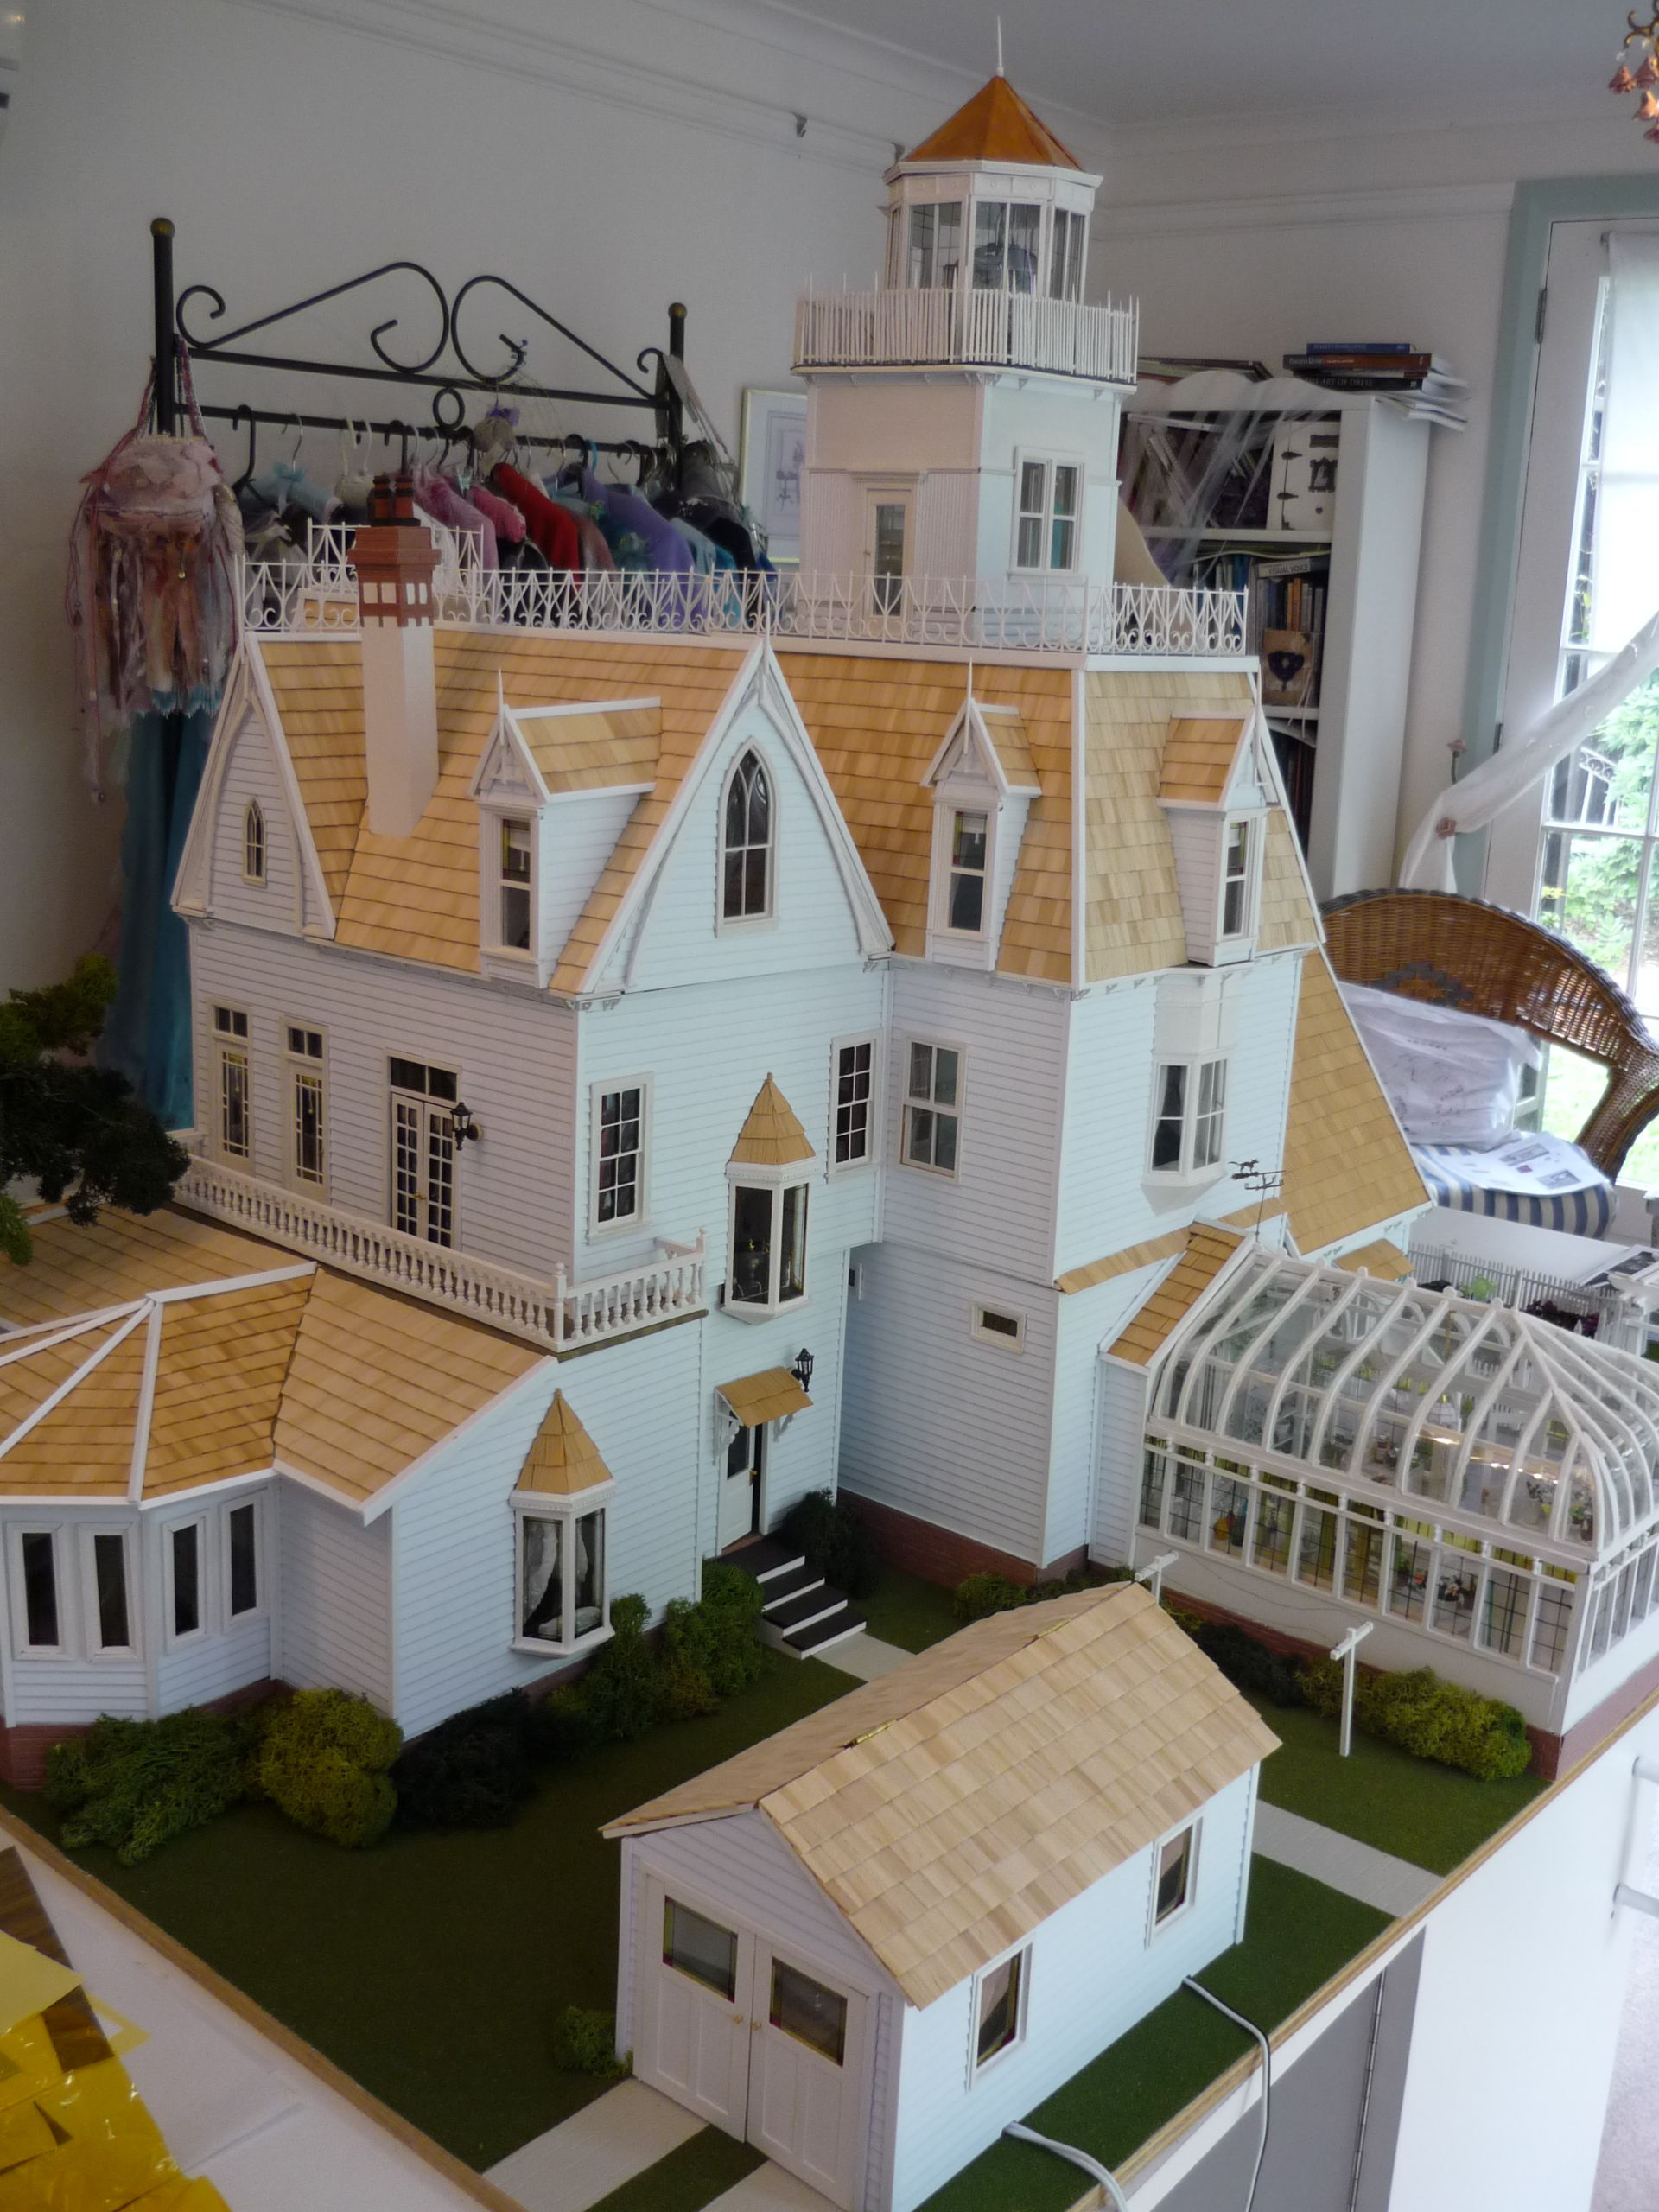 Practical Magic Dollshouse This lady built an incredible